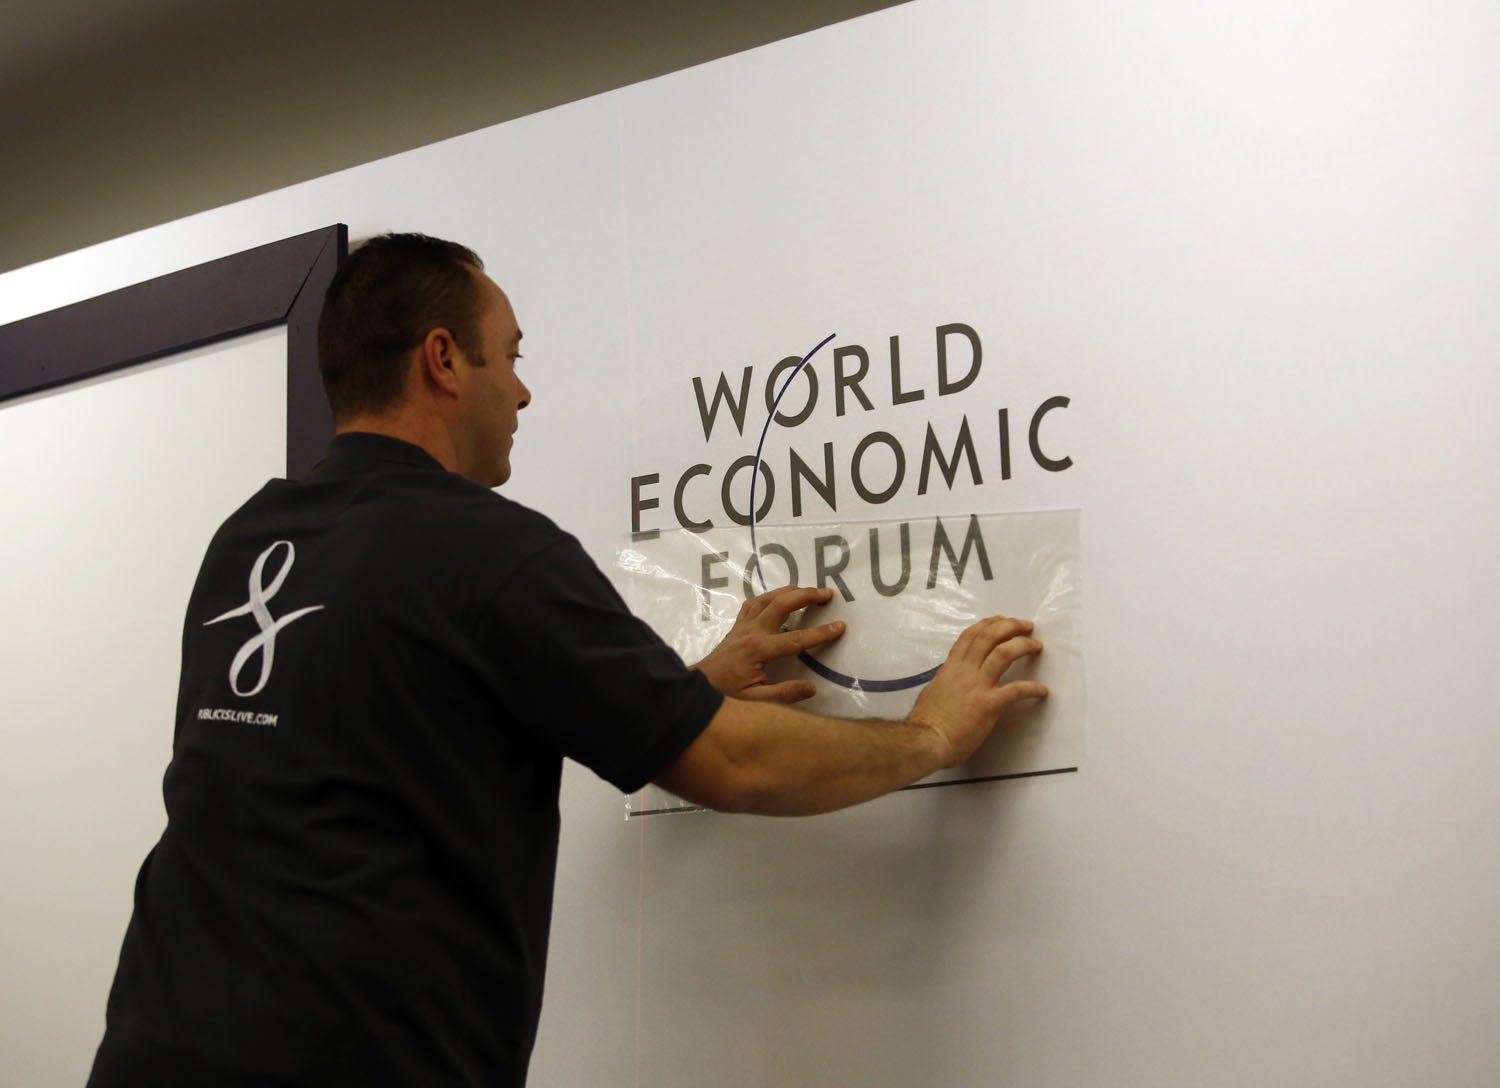 A worker prepares a logo for the World Economic Forum inside the Congress Center ahead of the World Economic Forum 2014 (WEF) meeting in Davos, Switzerland, on Sunday, Jan. 19, 2014.